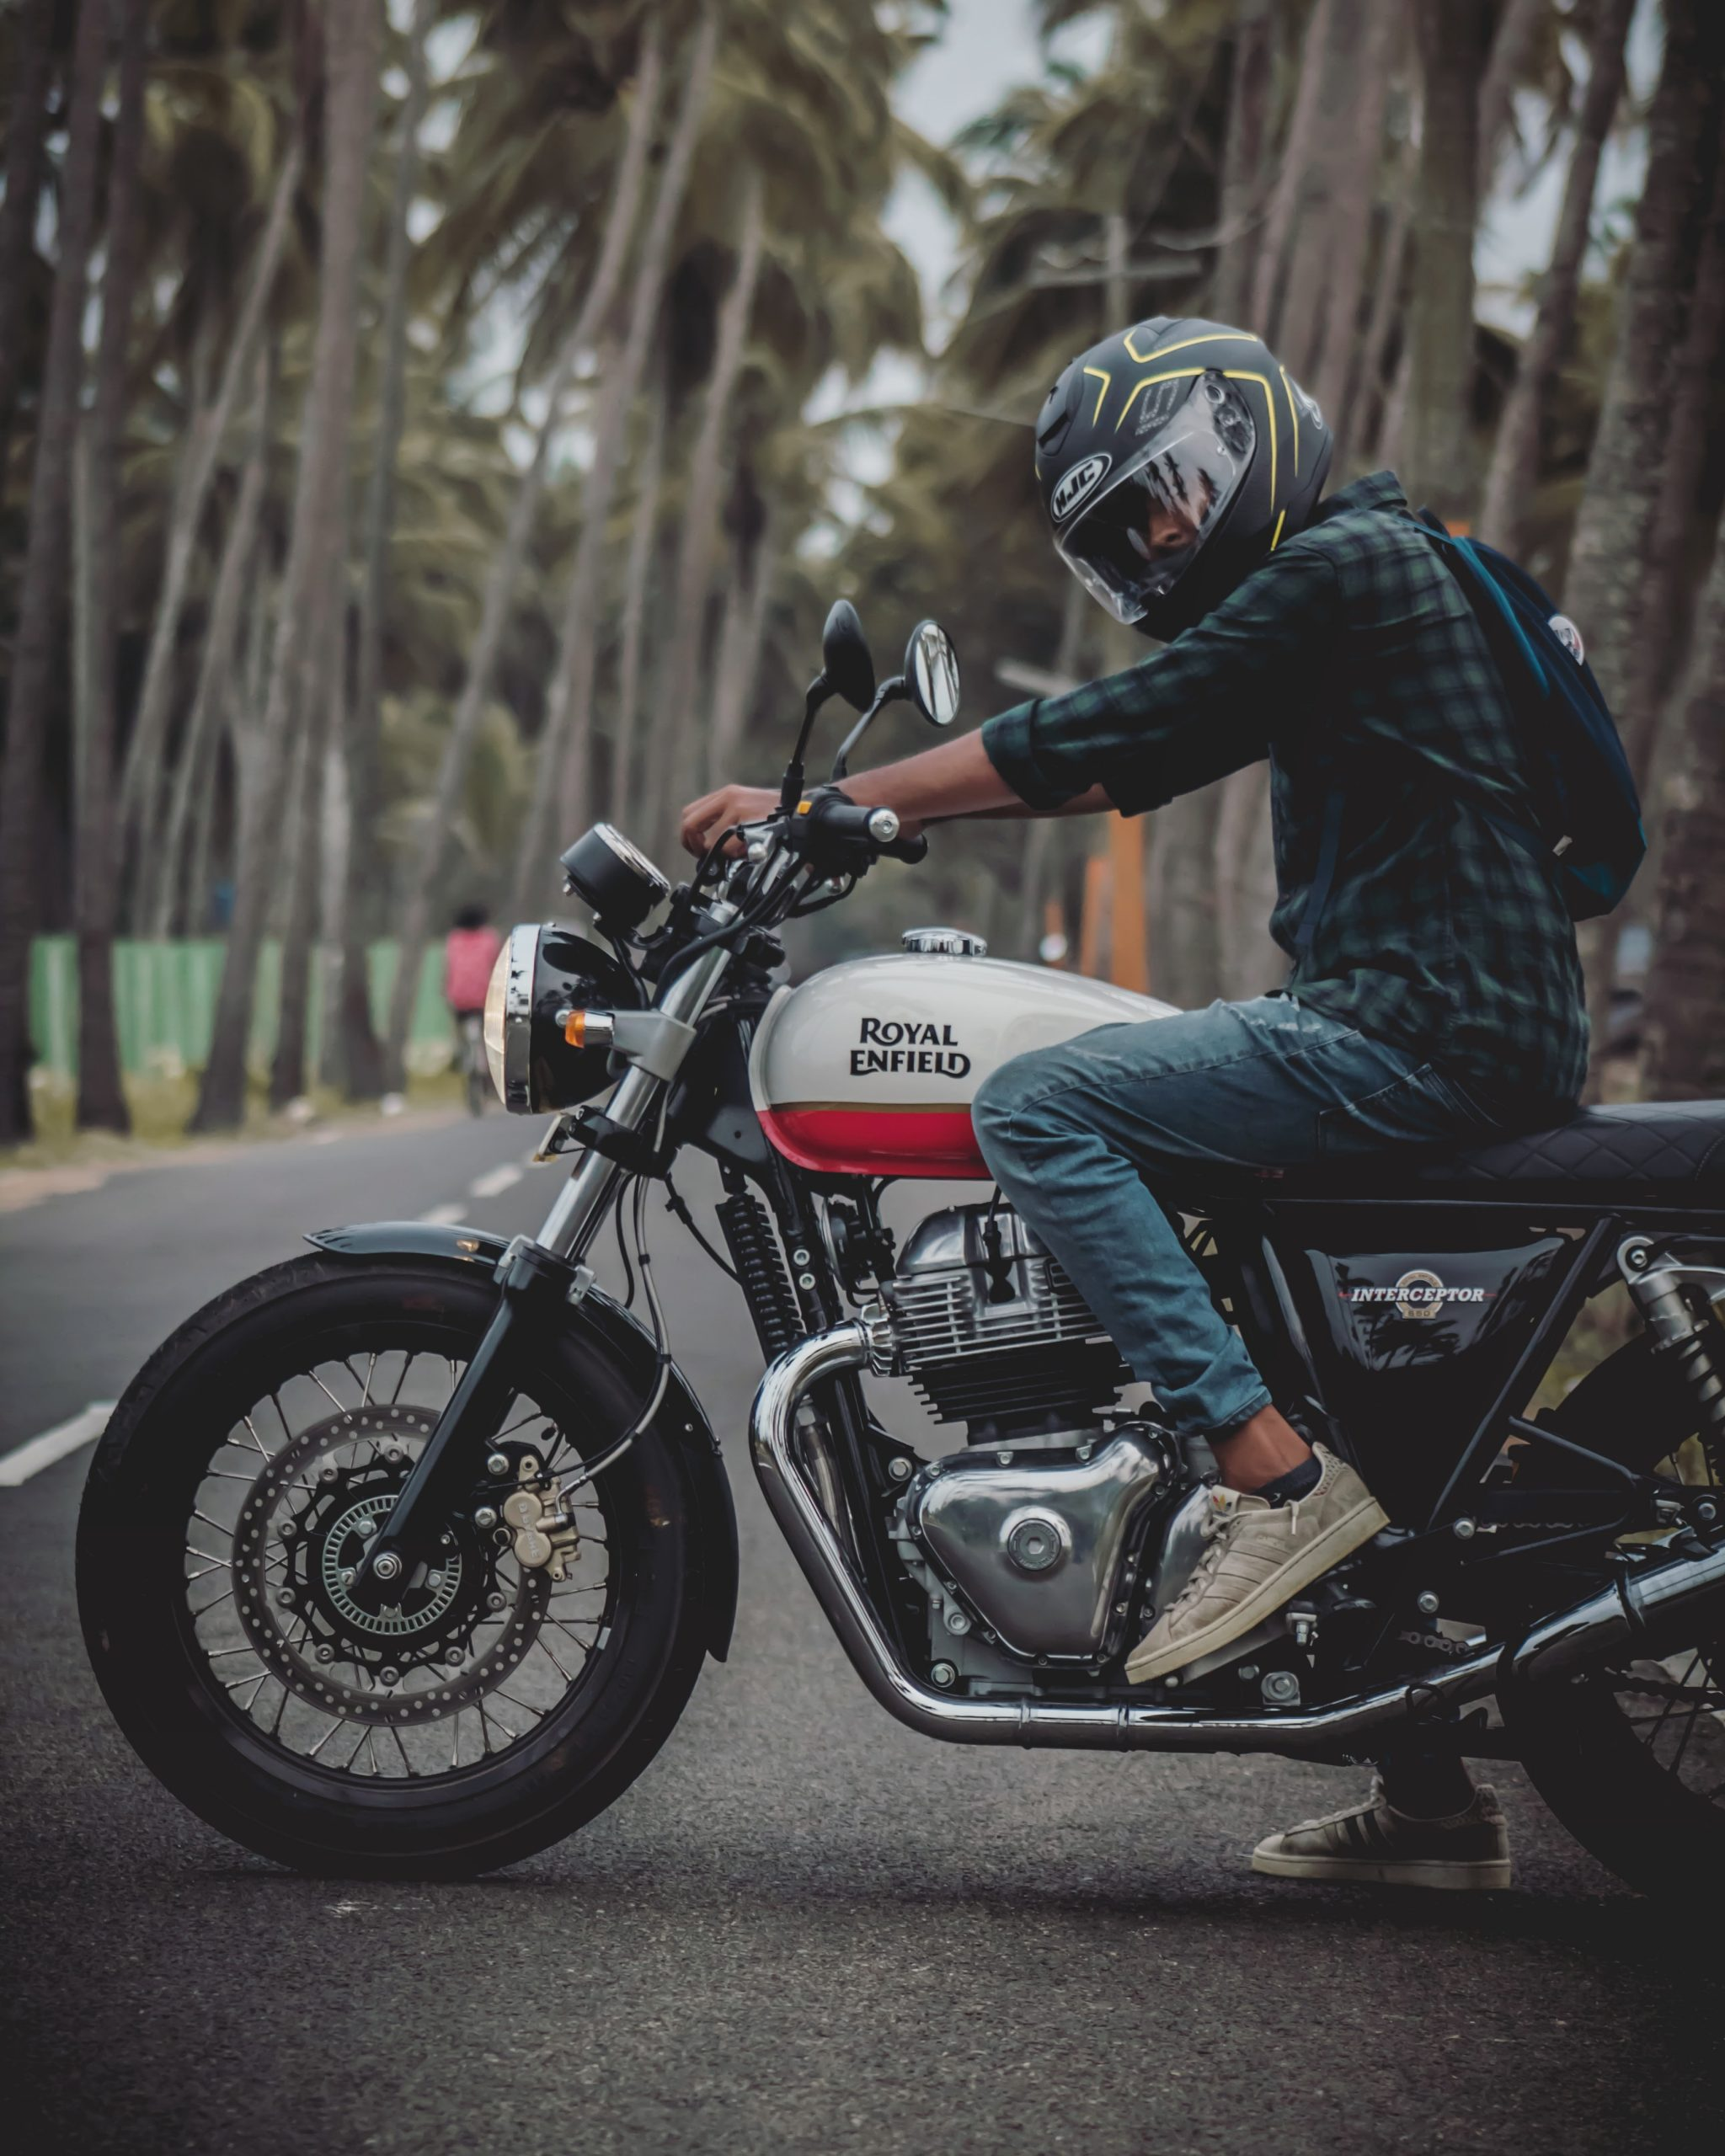 royal enfield quotes in himalayan-websplashers